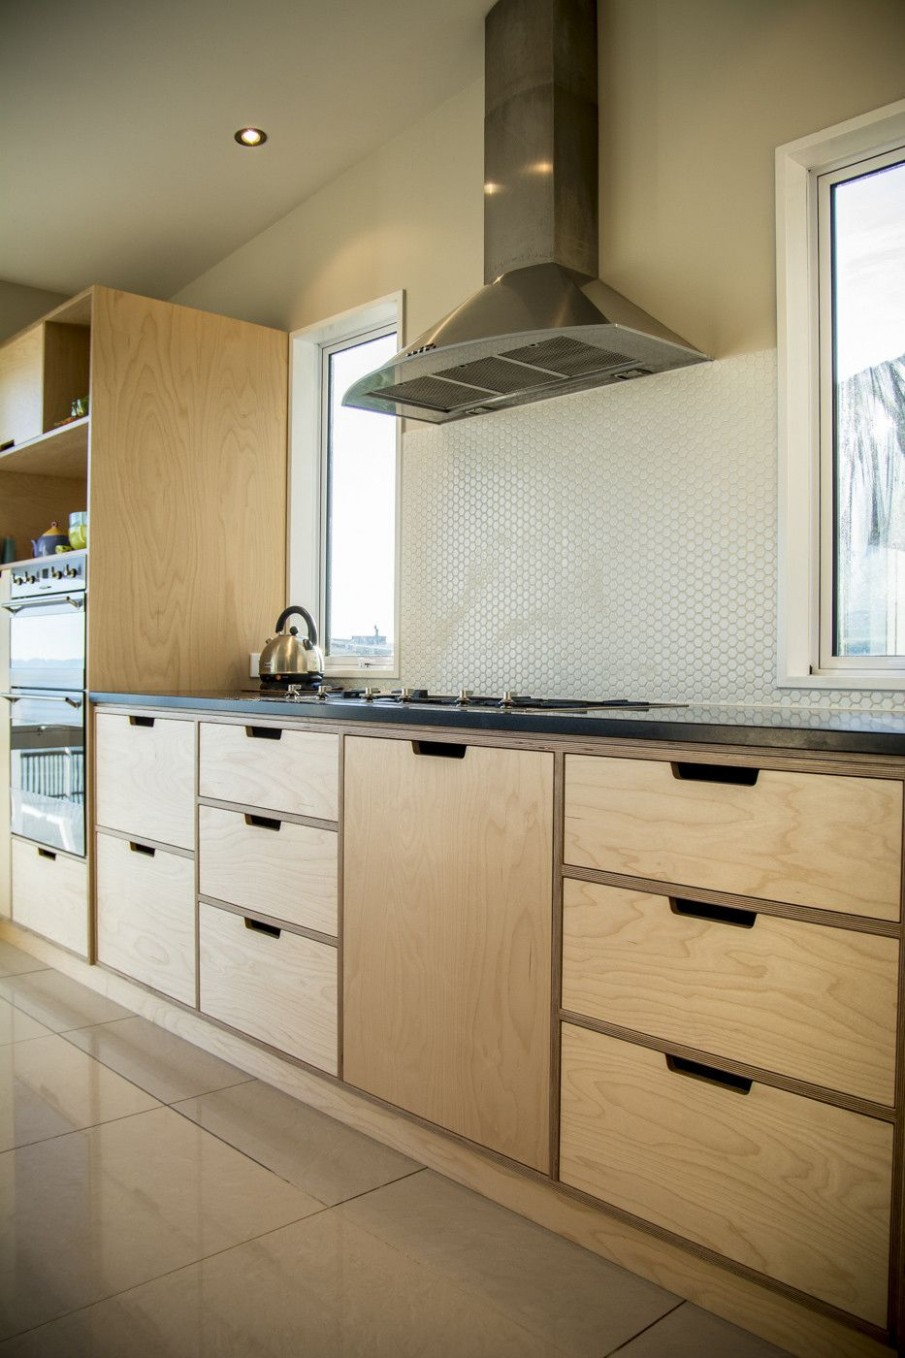 Crisp, simple and modern plywood kitchen